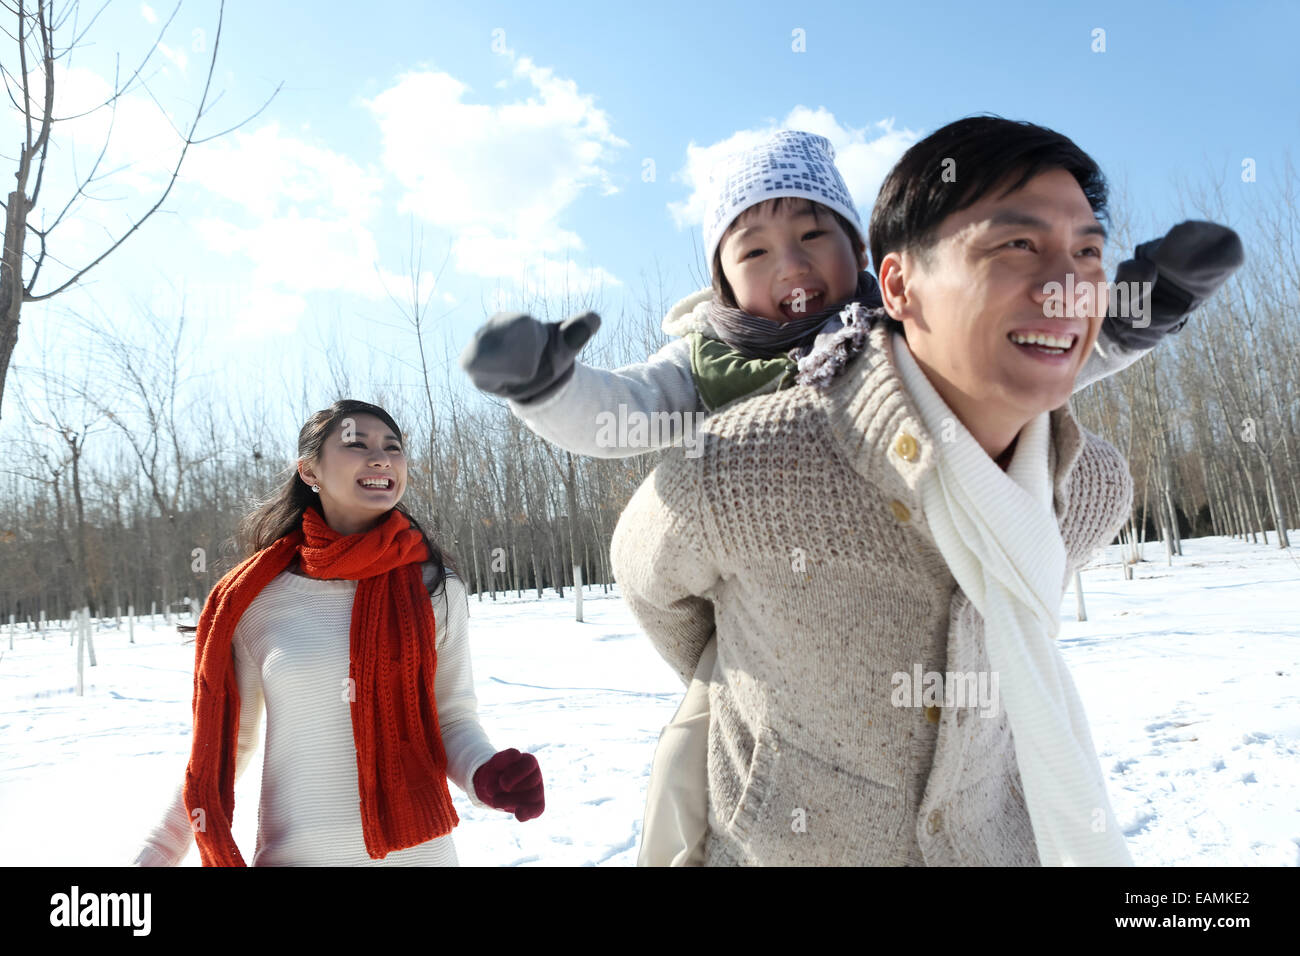 A family of three running in the snow - Stock Image